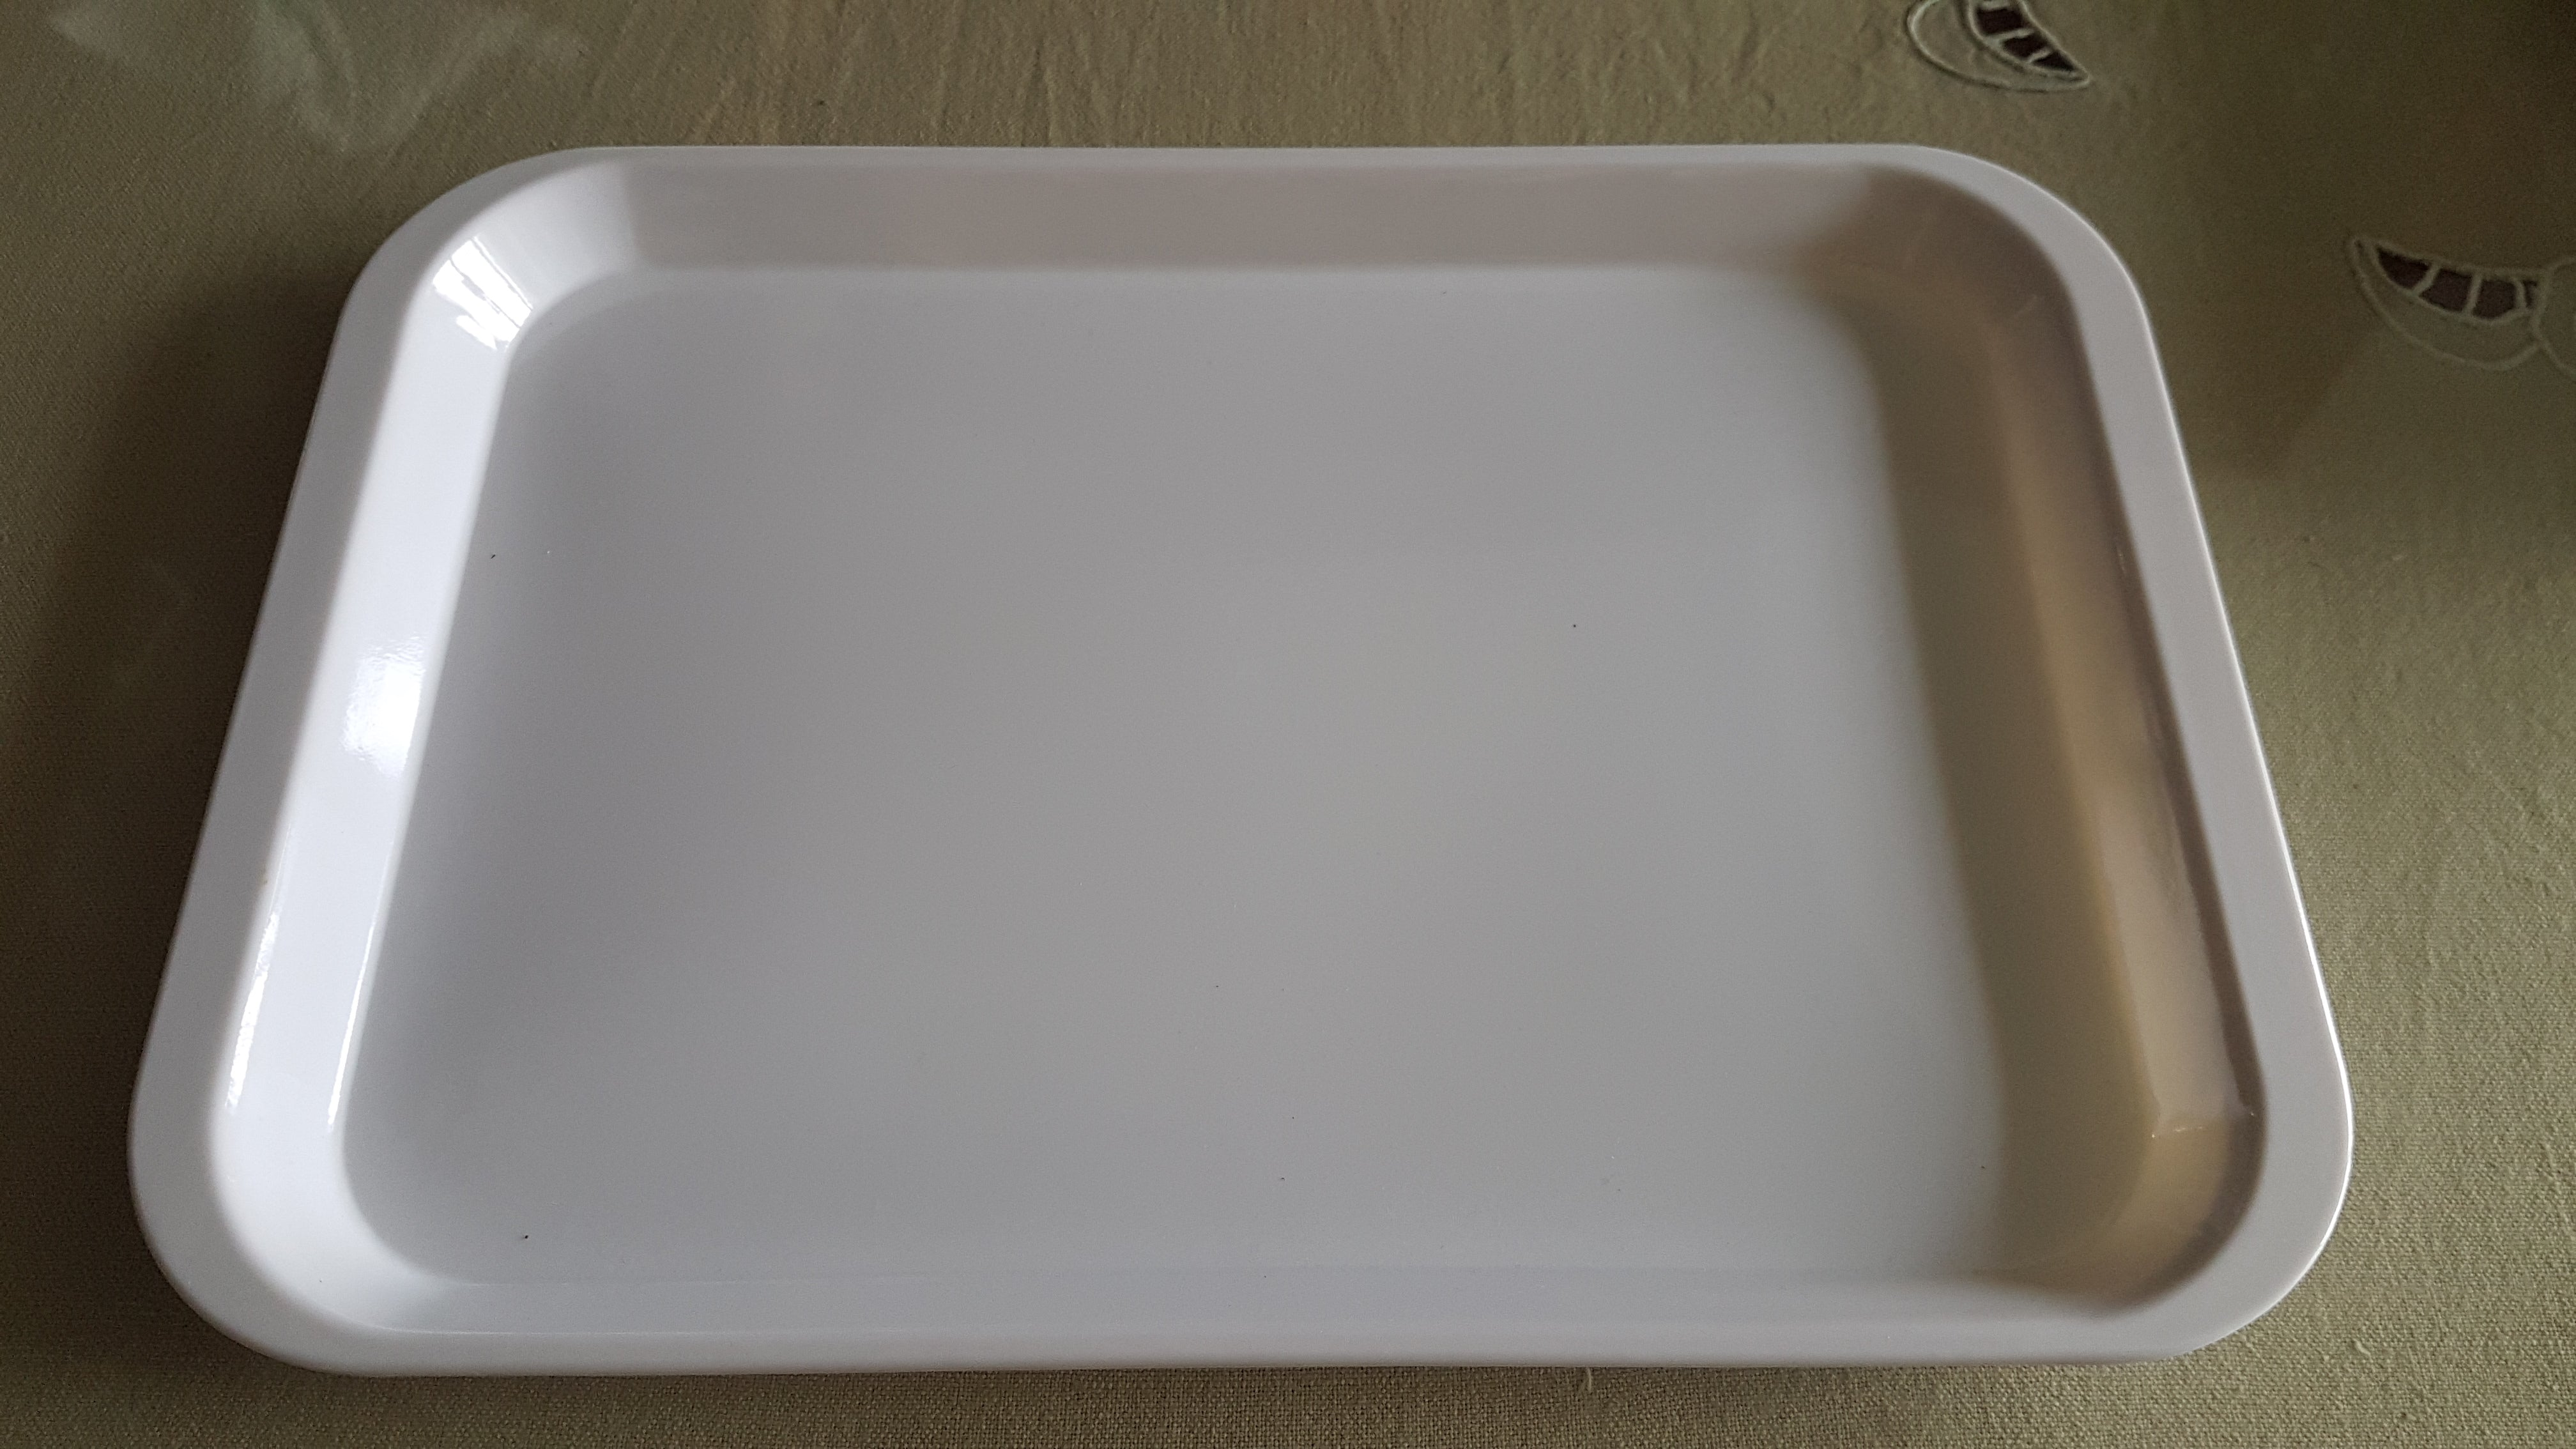 Practical Life Activity Plastic Tray Small Righttolearn Com Sg